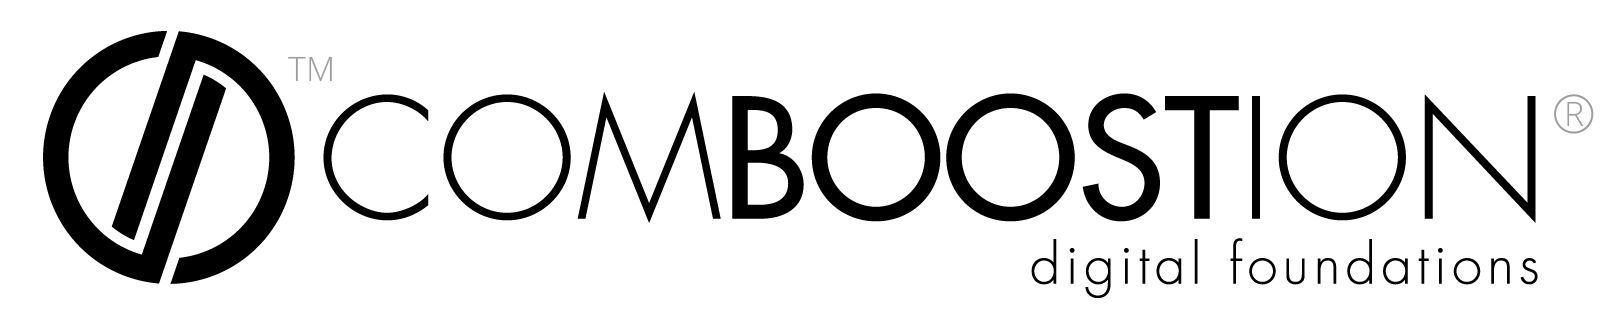 COMBOOSTION® - logo (full)